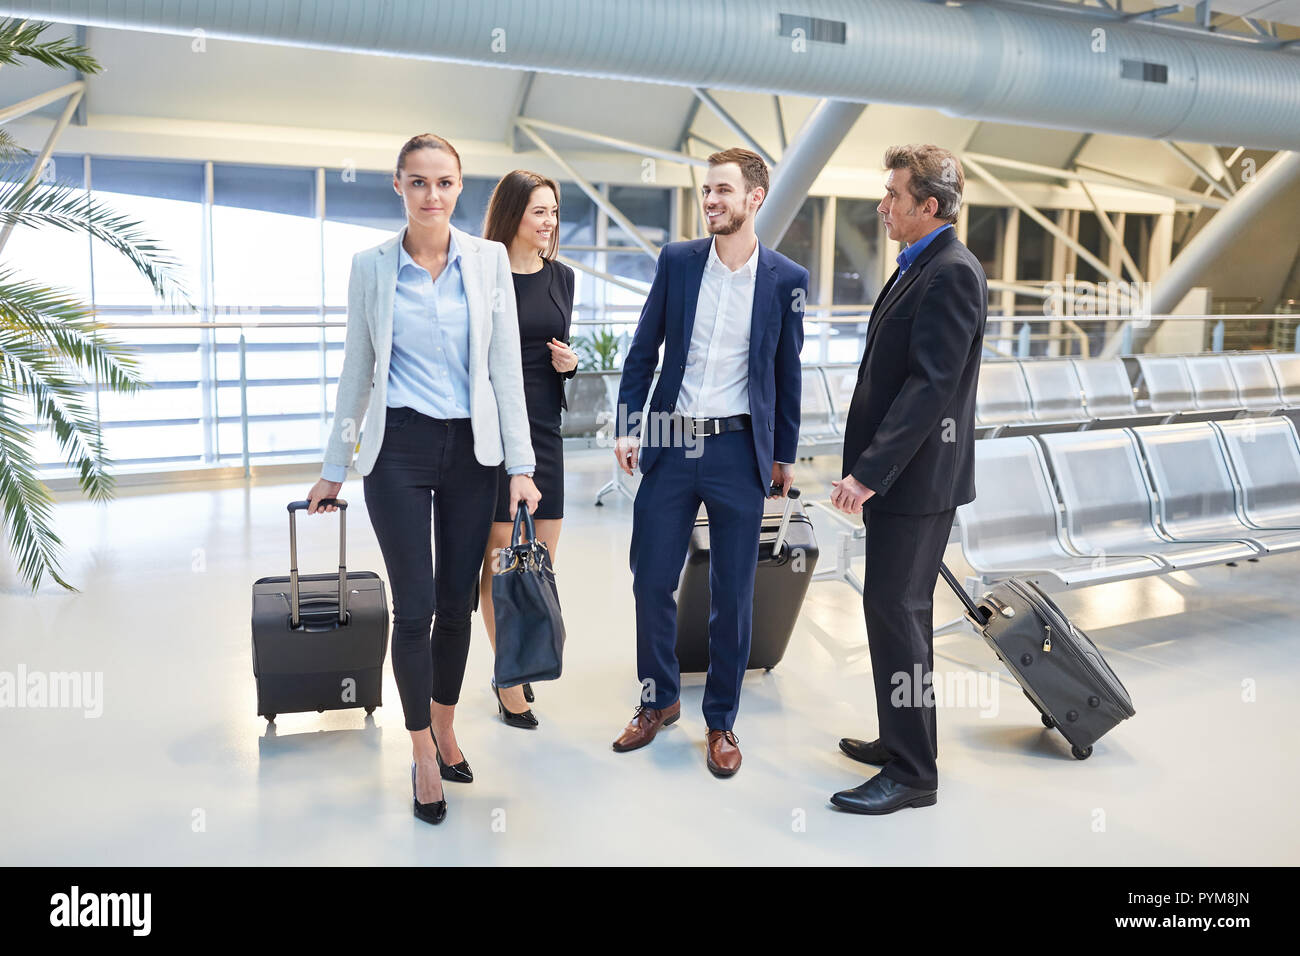 Group Of Business People With Luggage On Business Trip On Arrival In Airport Terminal Stock Photo Alamy